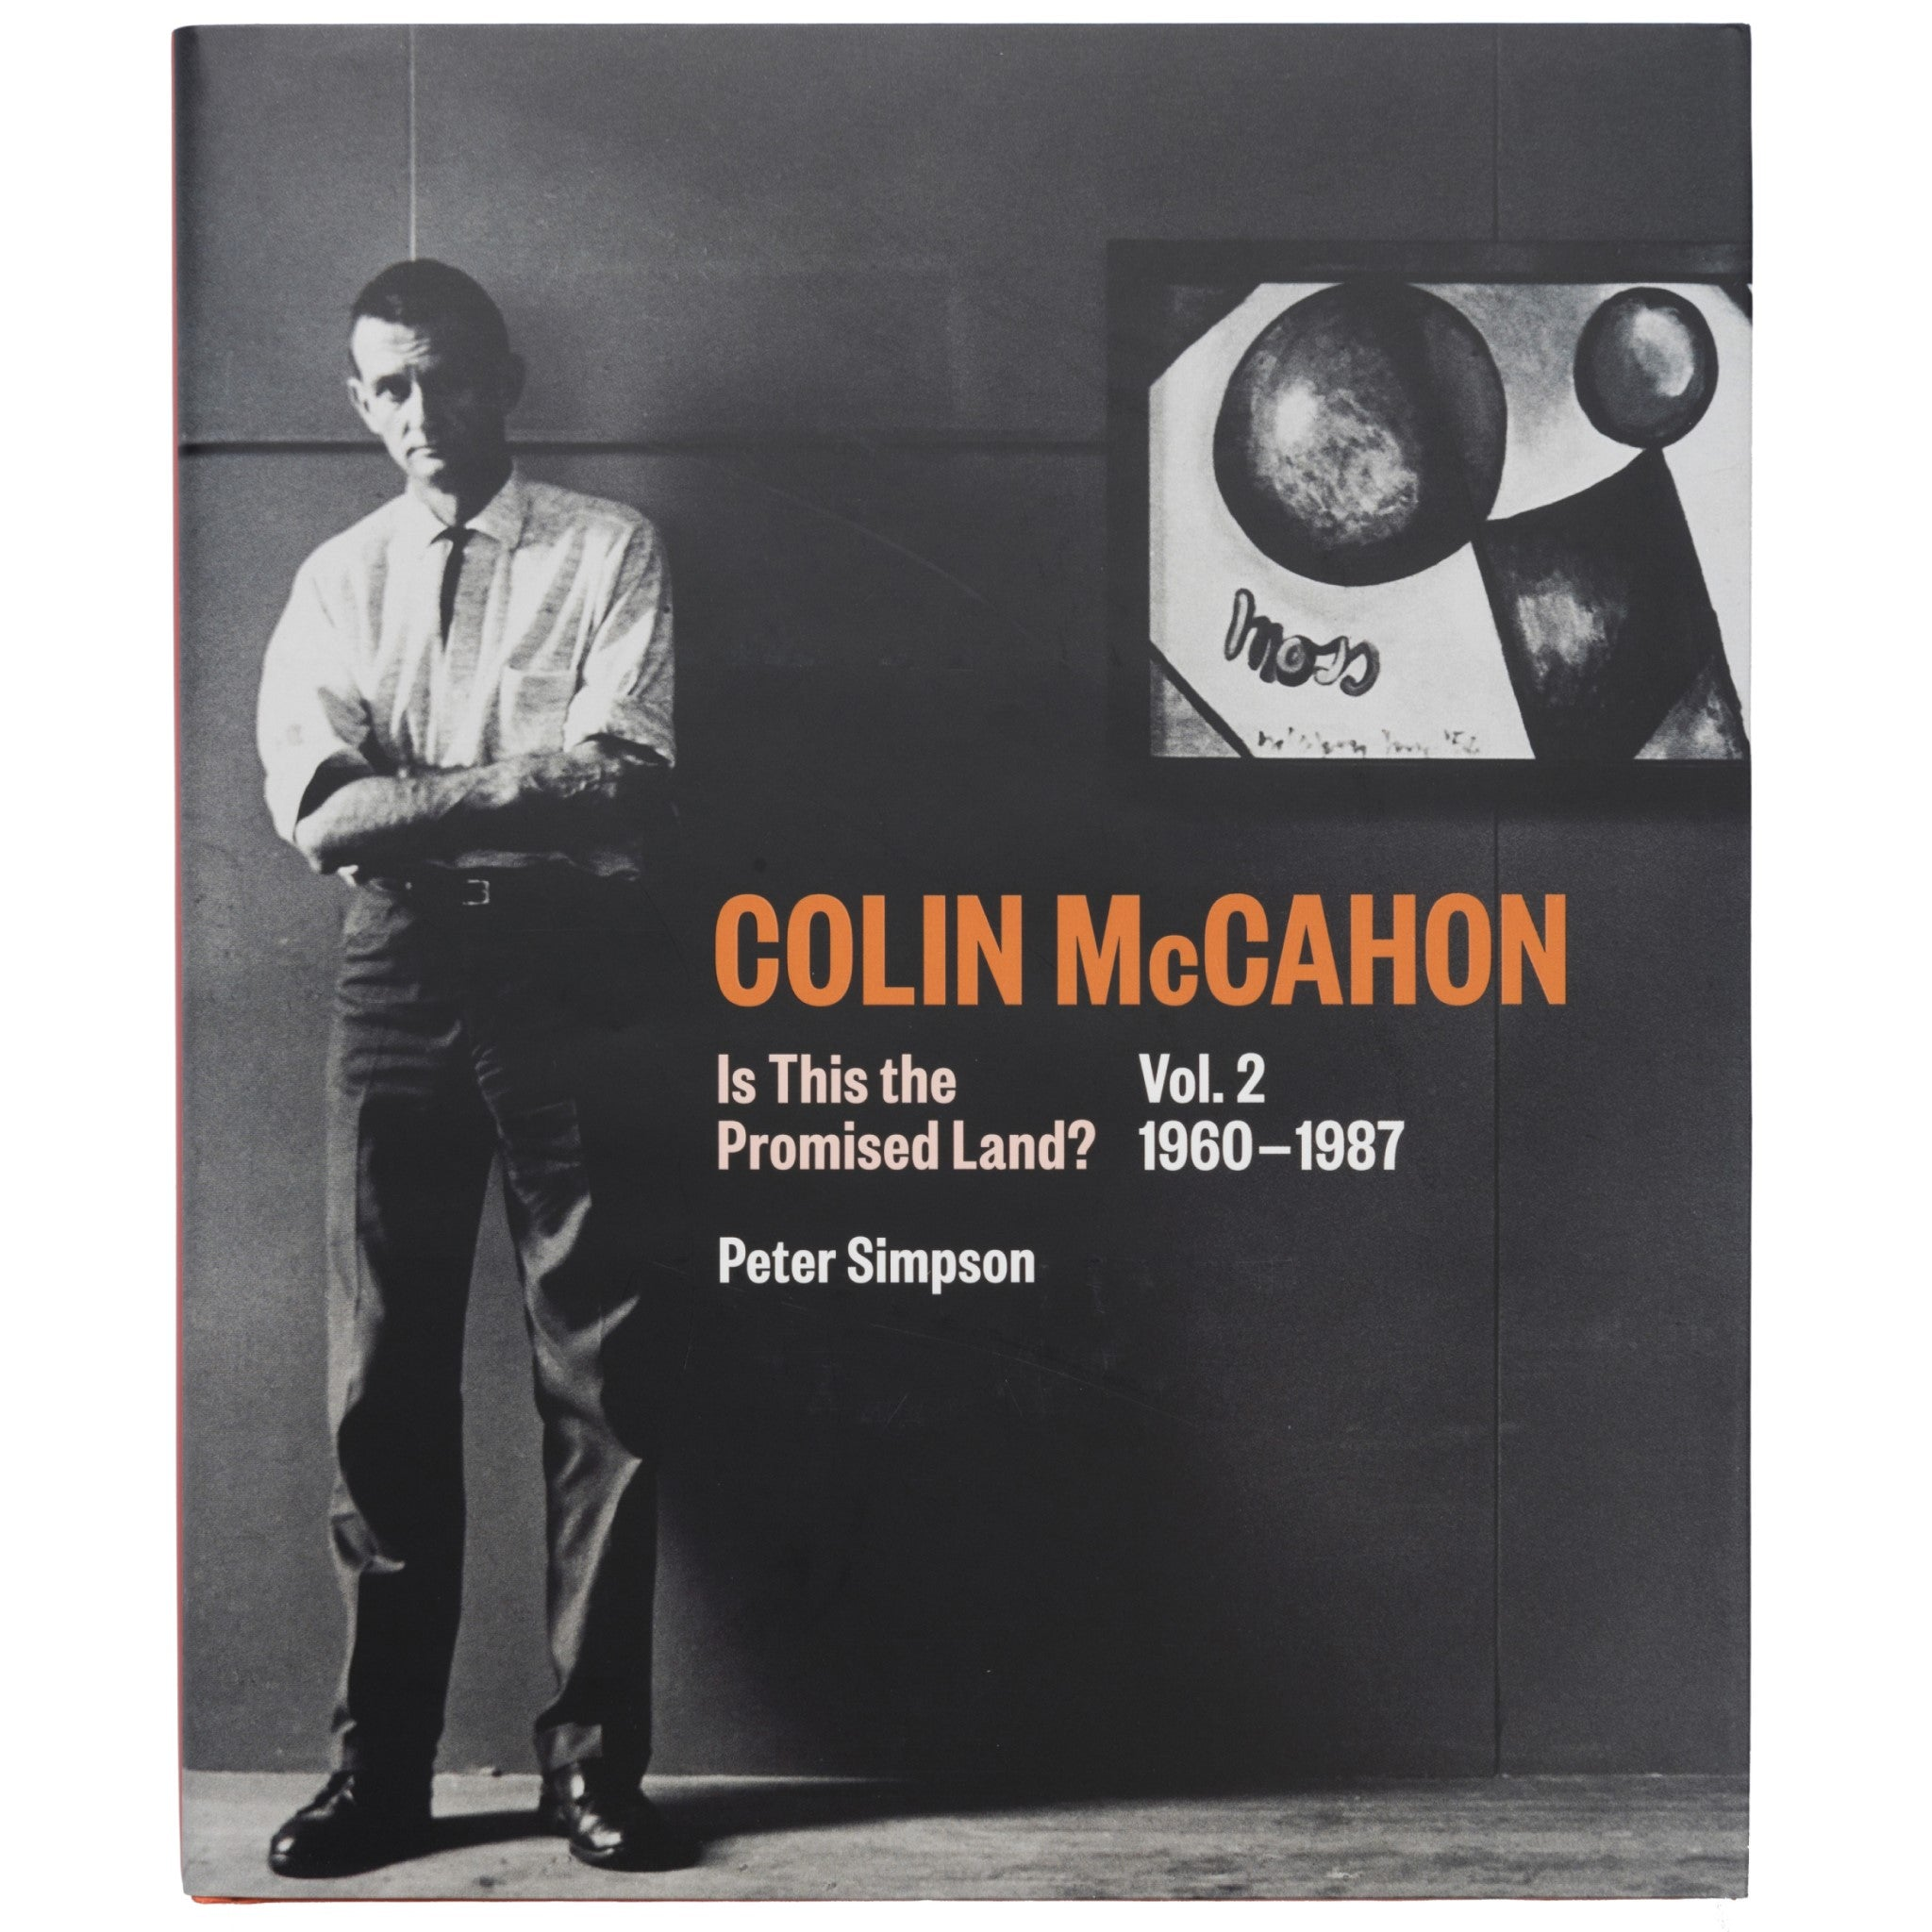 Colin McCahon: Is This the Promised Land? Vol. 2 Image